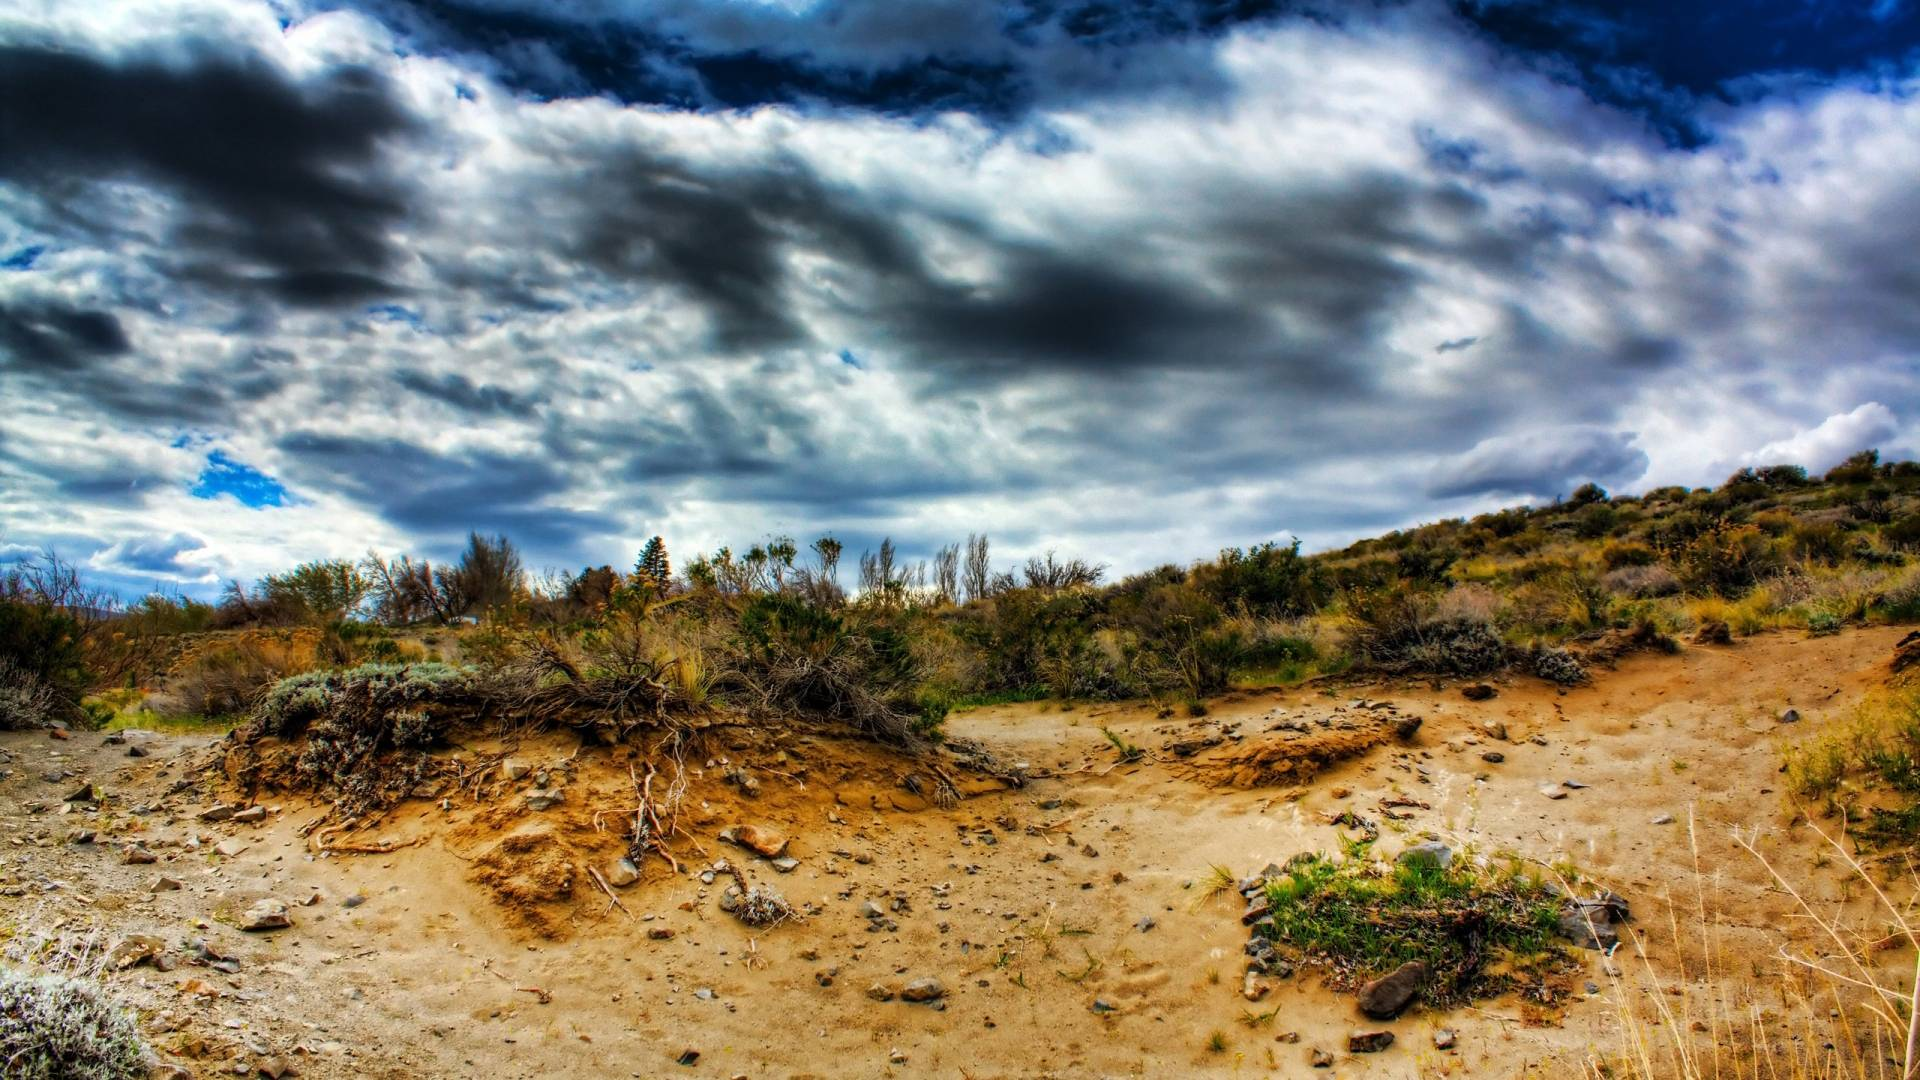 HDr Backgrounds